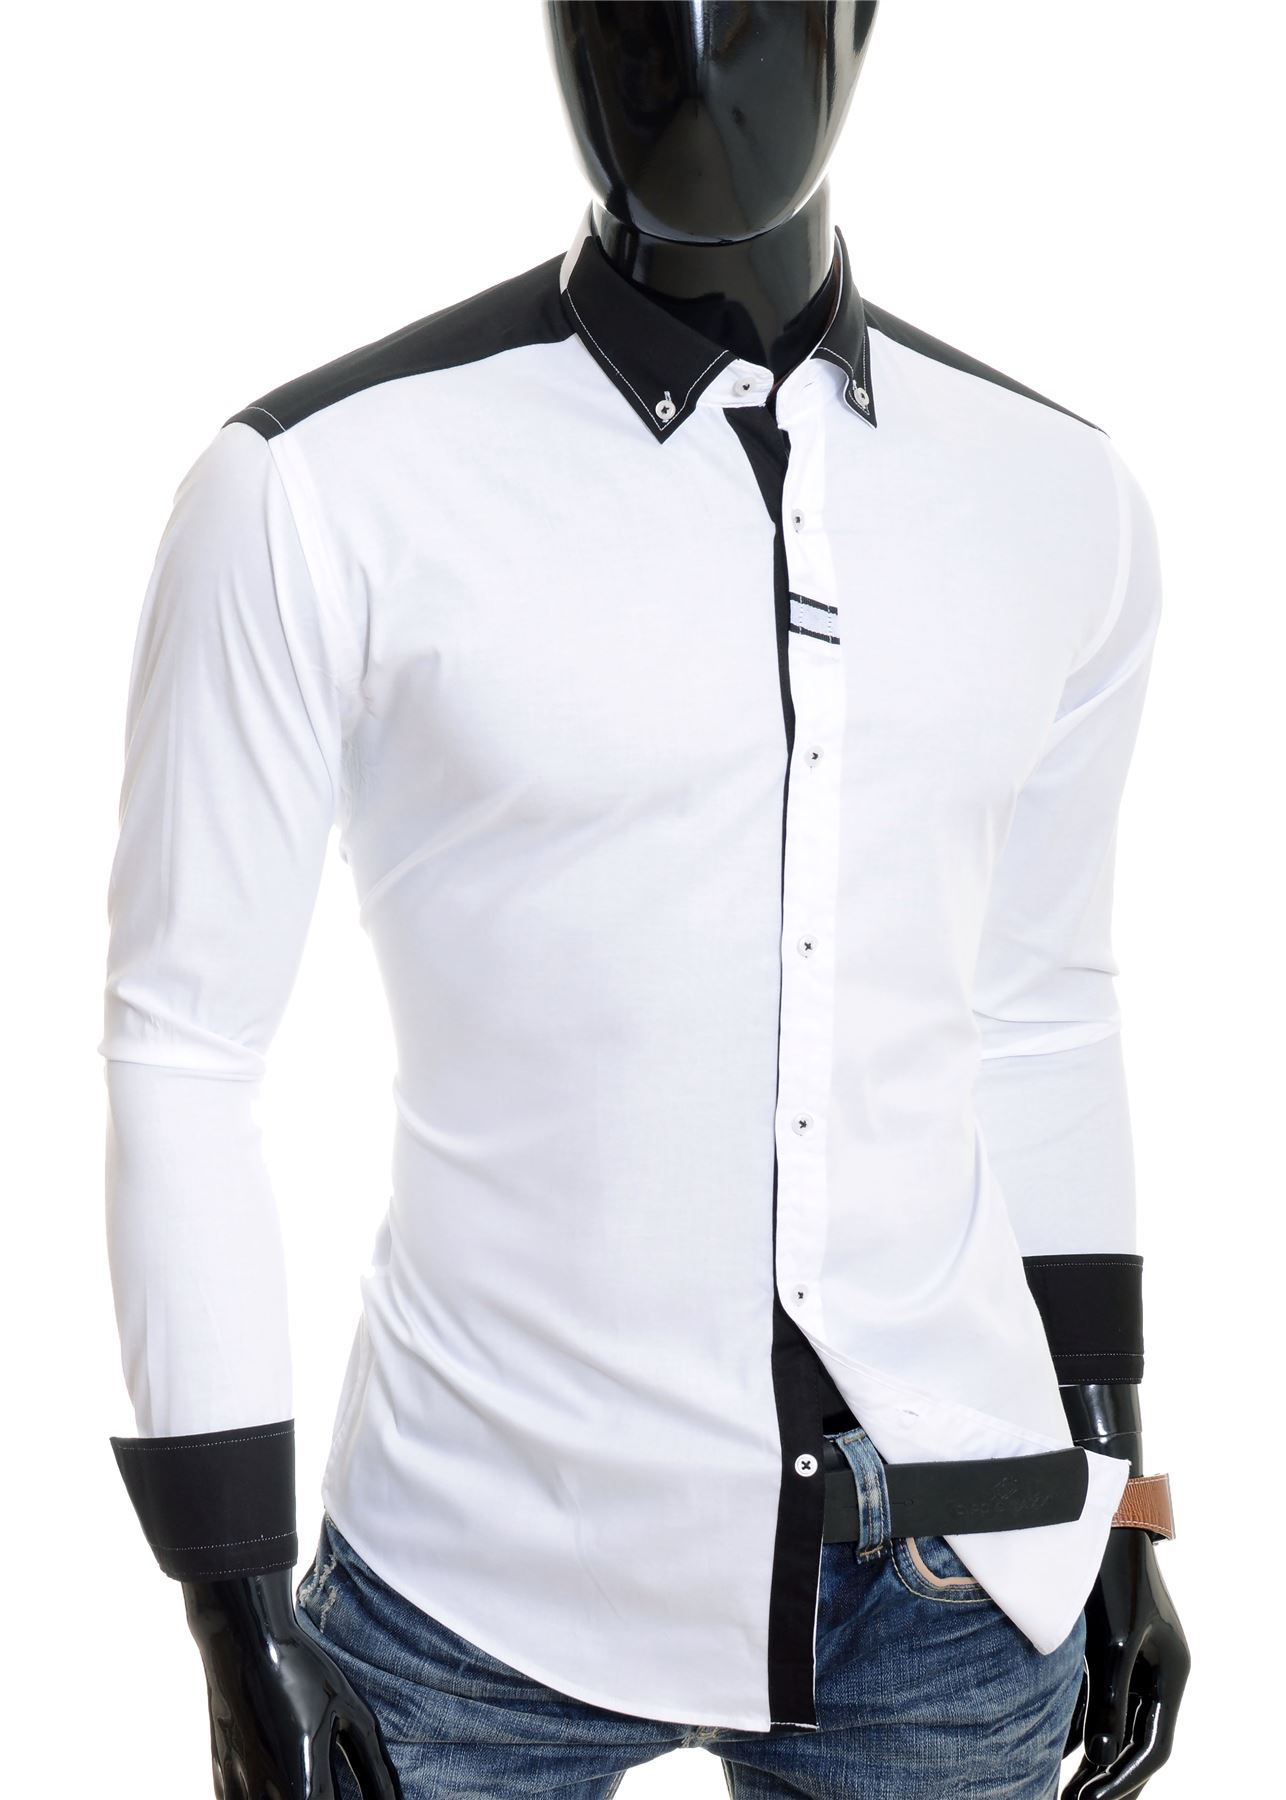 Cipo-amp-Baxx-Designer-Men-039-s-Elegant-Shirt-White-Black-Cotton-Slim-Contrast-Cuffs thumbnail 11